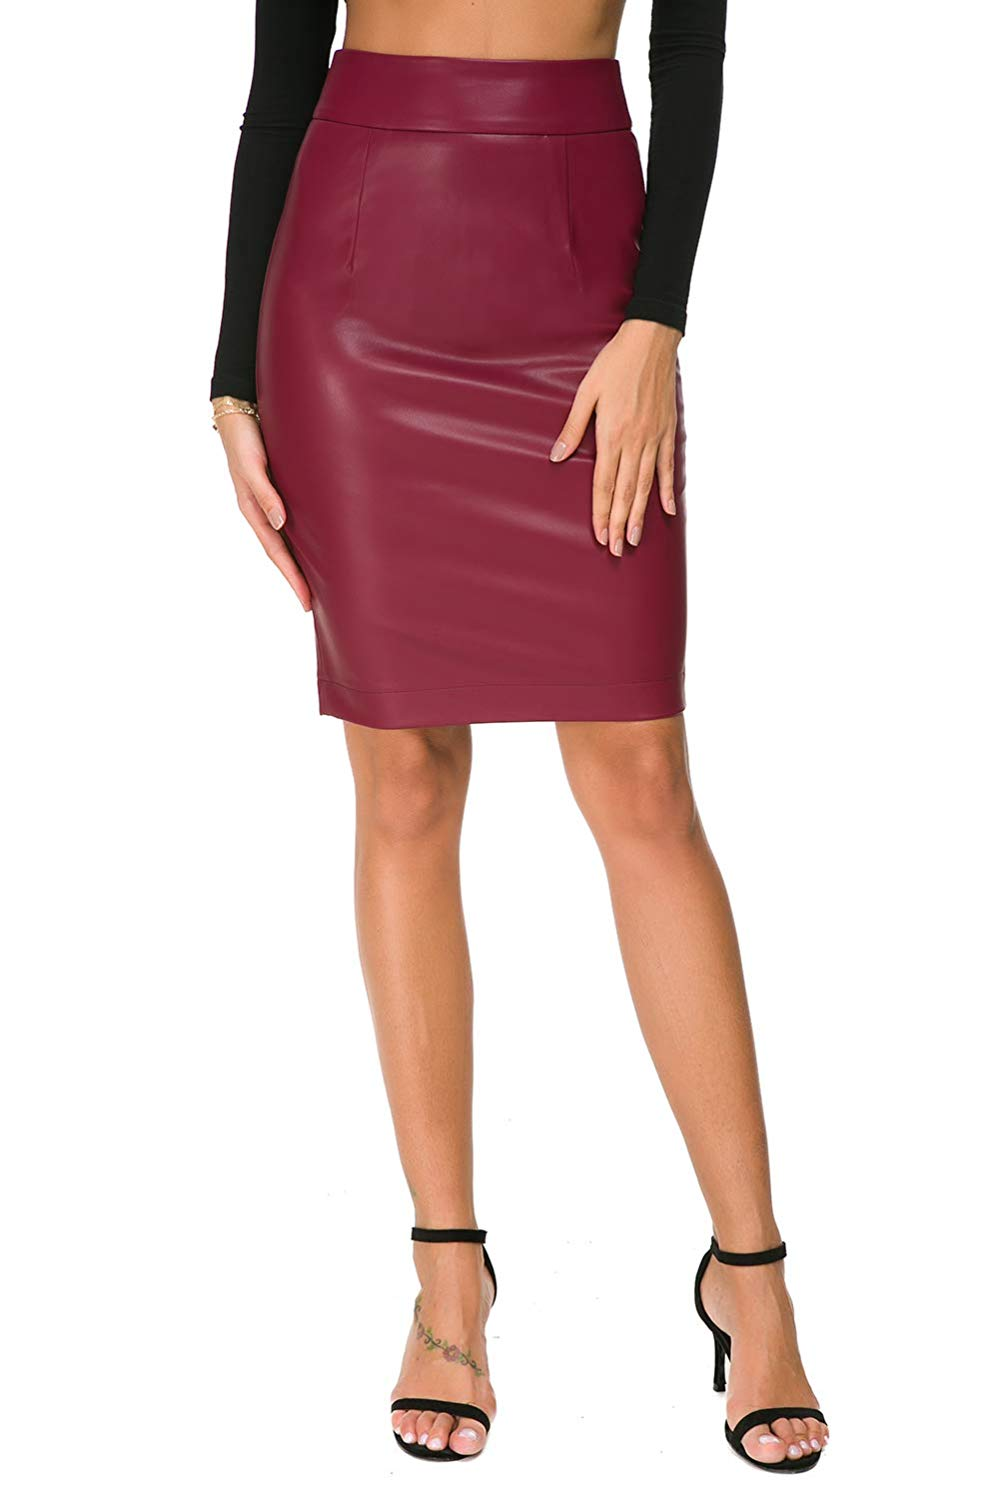 Nasperee Women Faux Leather Pencil Midi Skirt Slim Fit High Waist Knee Length Office Bodycon Skirts